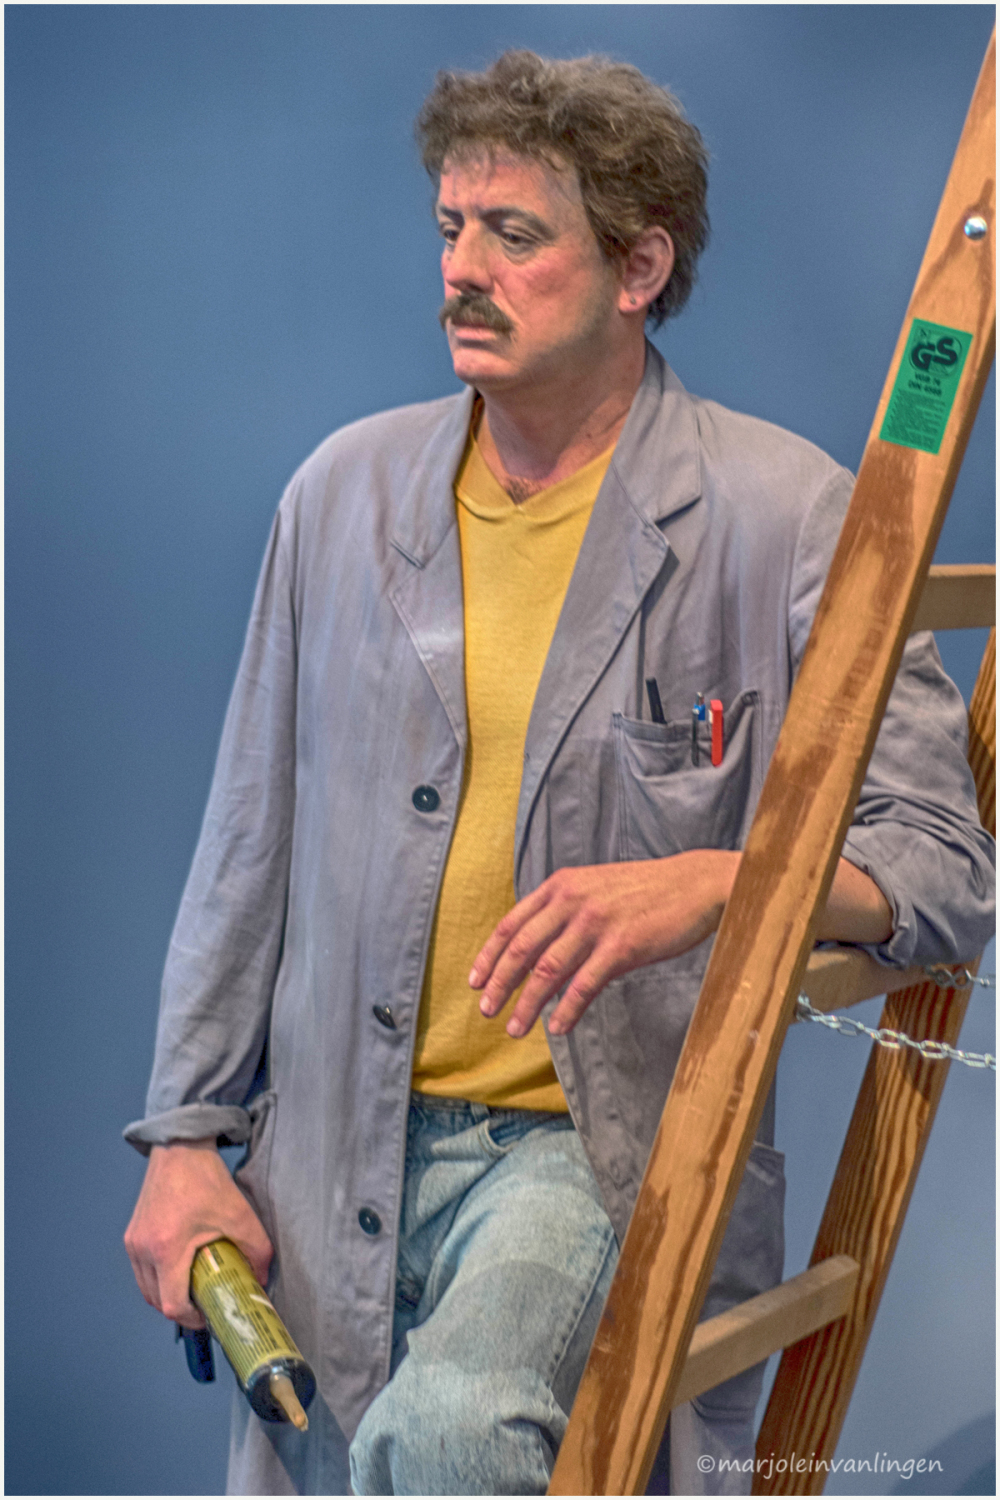 HYPERREALISM : THE HANDYMAN